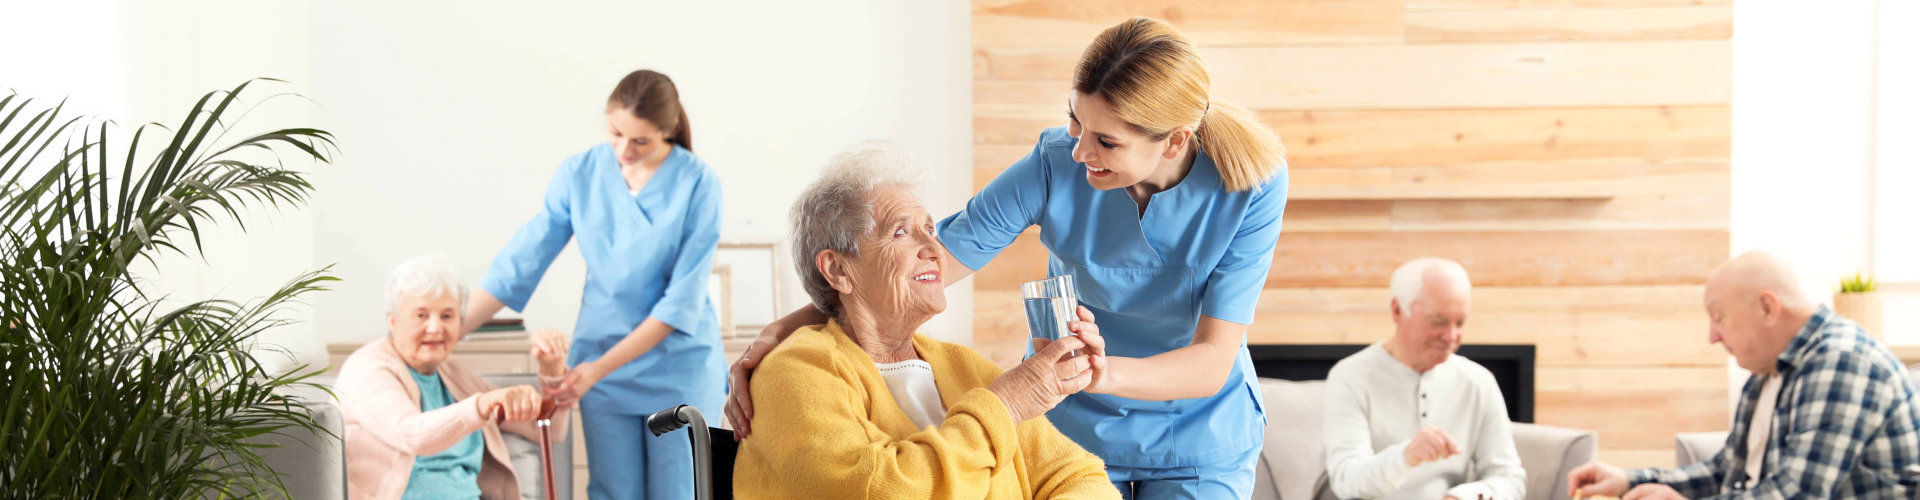 caregivers and their patients